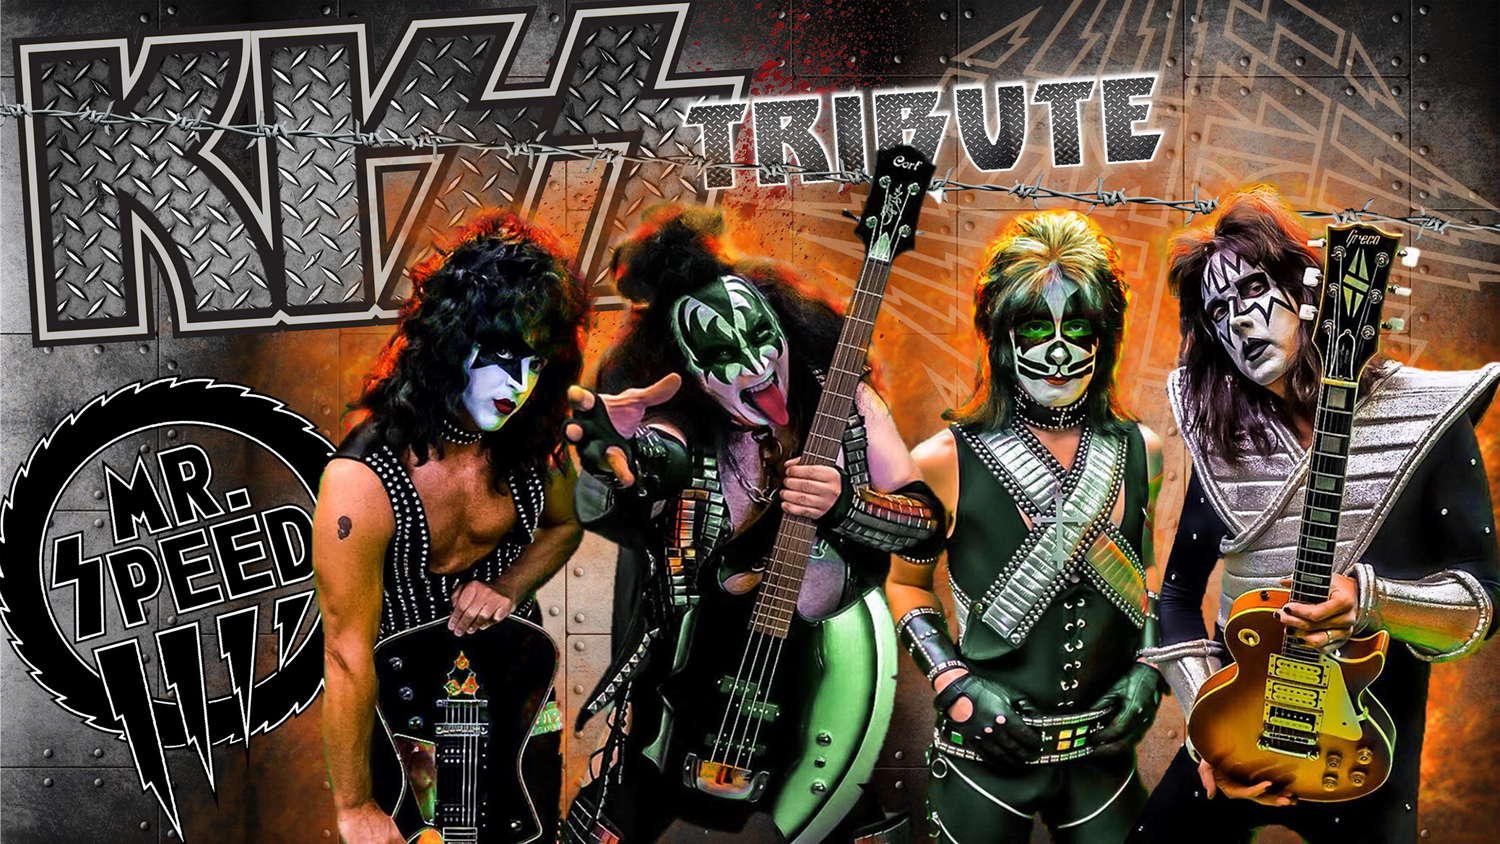 Mr. Speed - Kiss Tribute Band